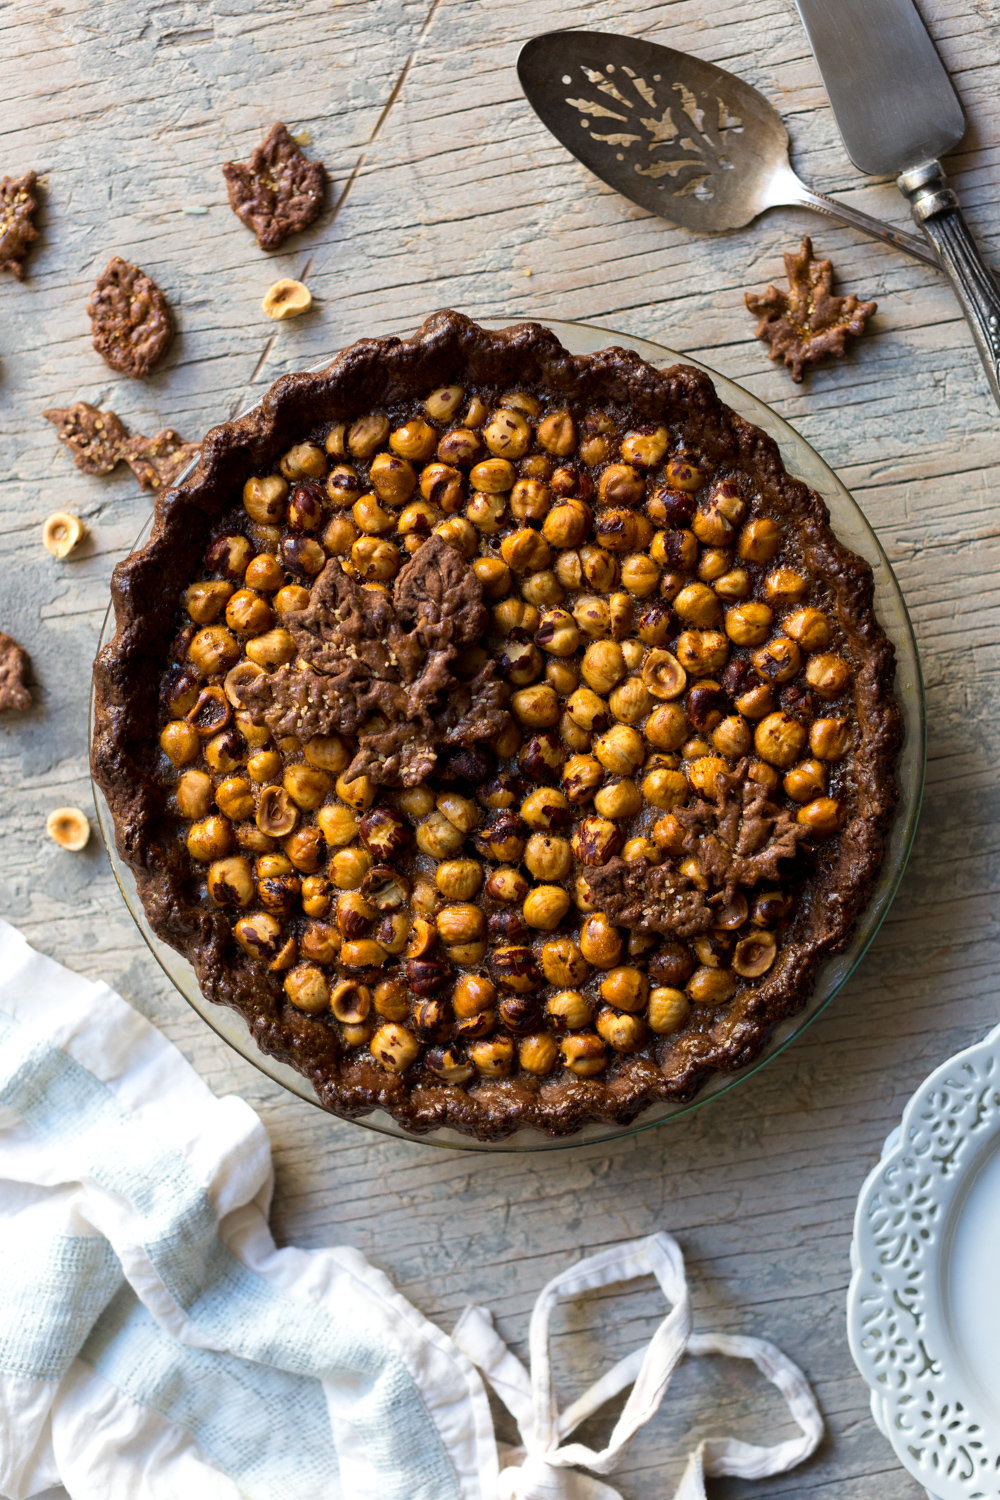 Chocolate Hazelnut Maple Bourbon Pie baked.